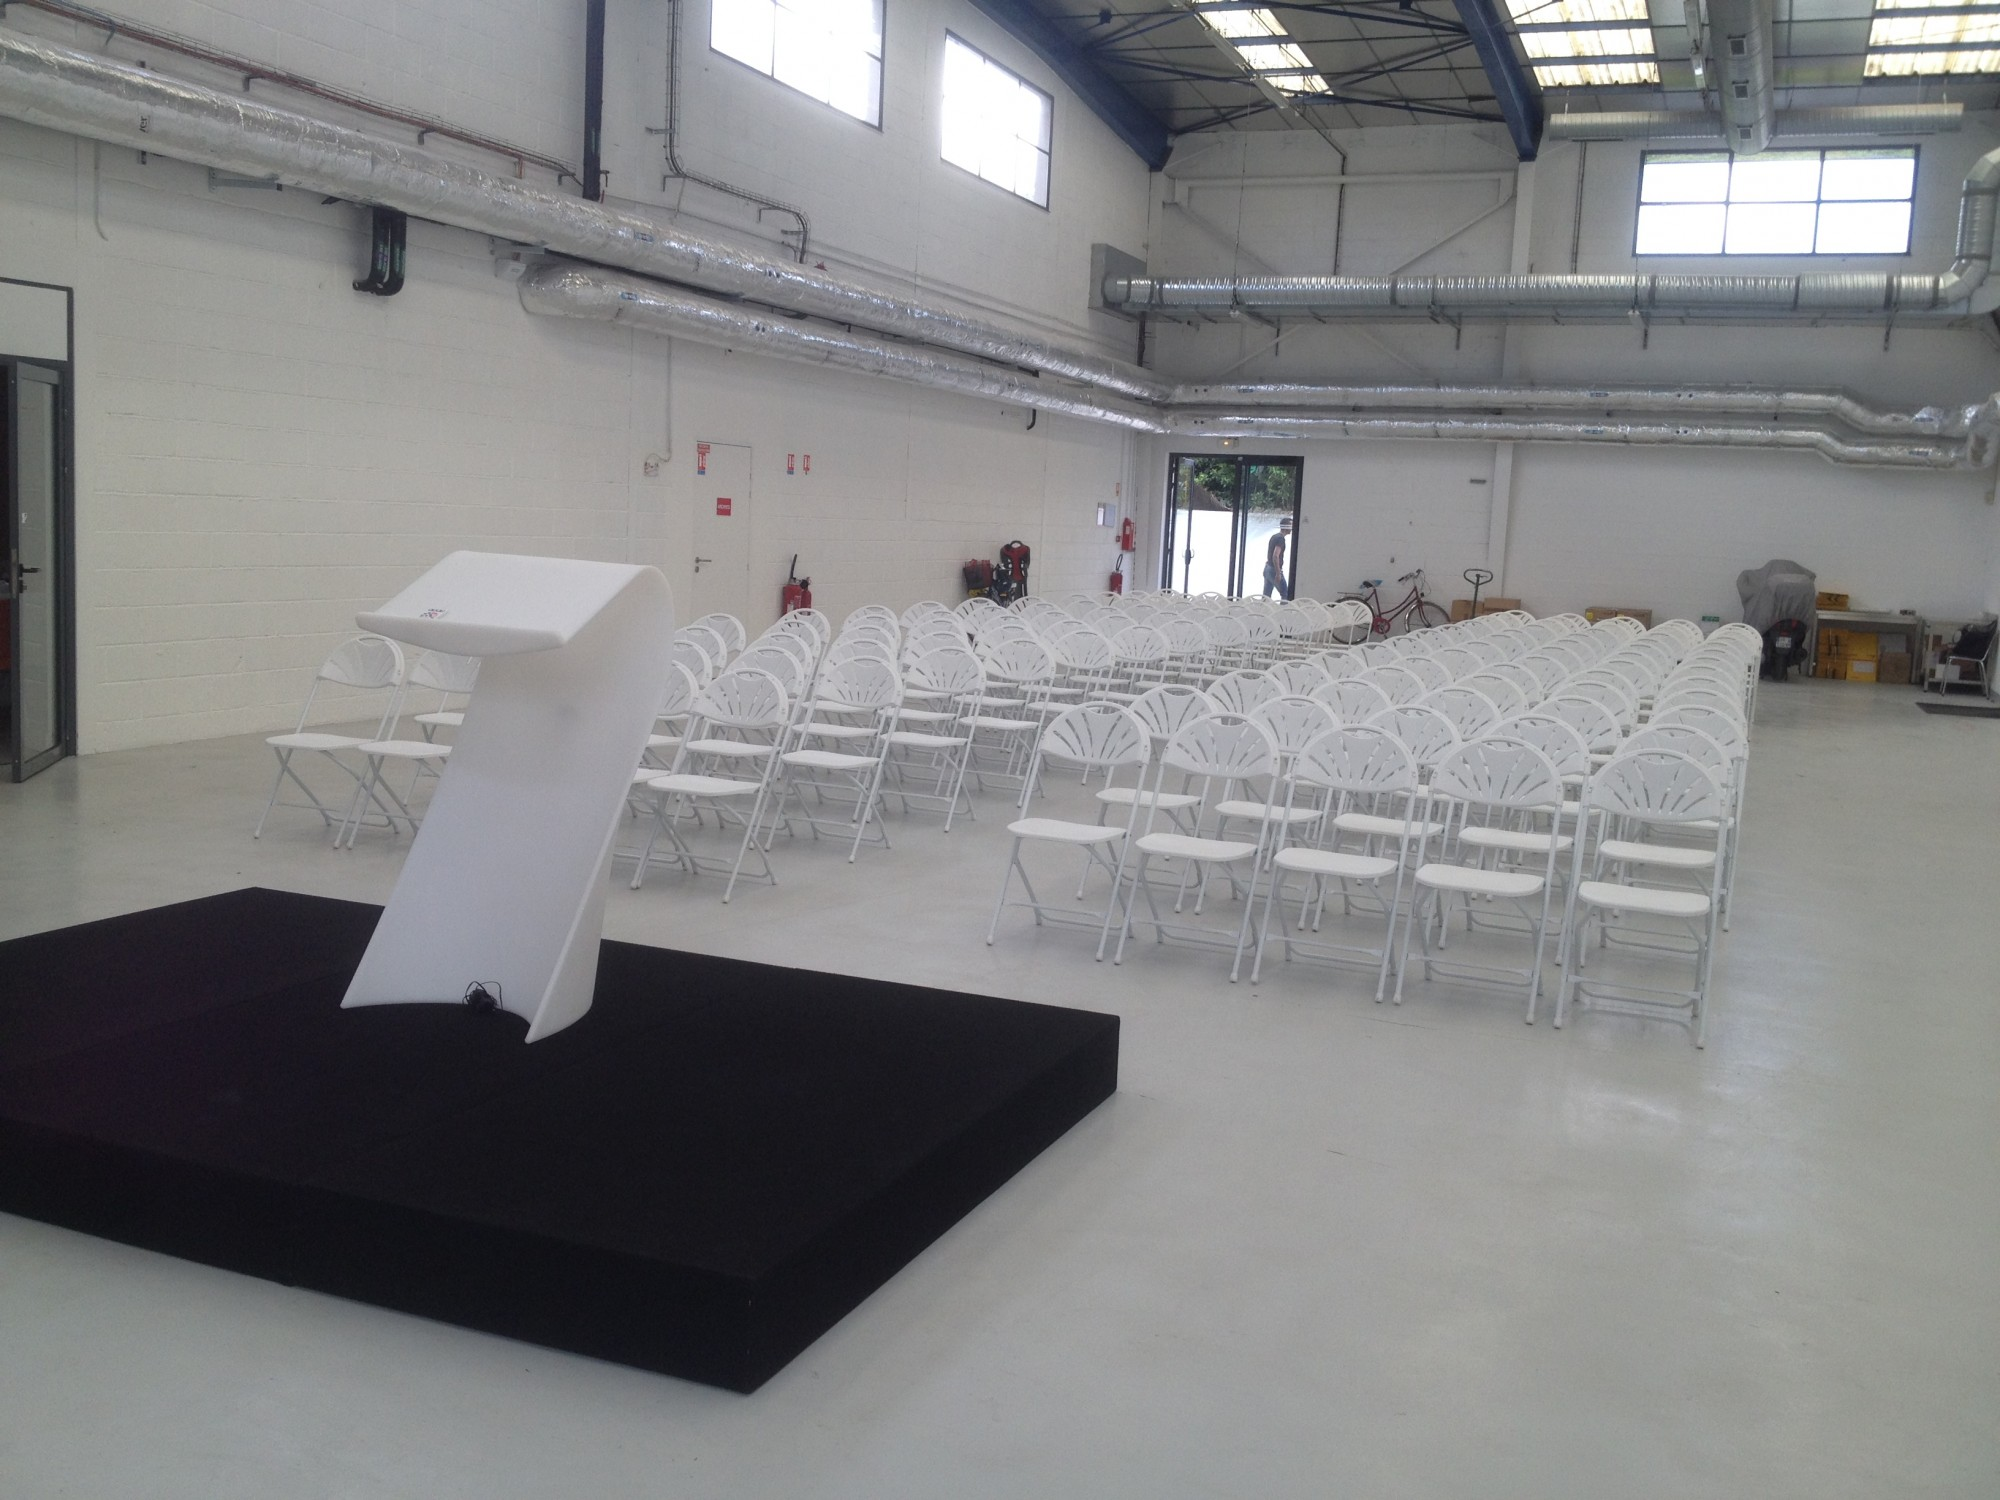 Location Chaises Reception Location De Chaise Pliante Blanche Location Mobilier De